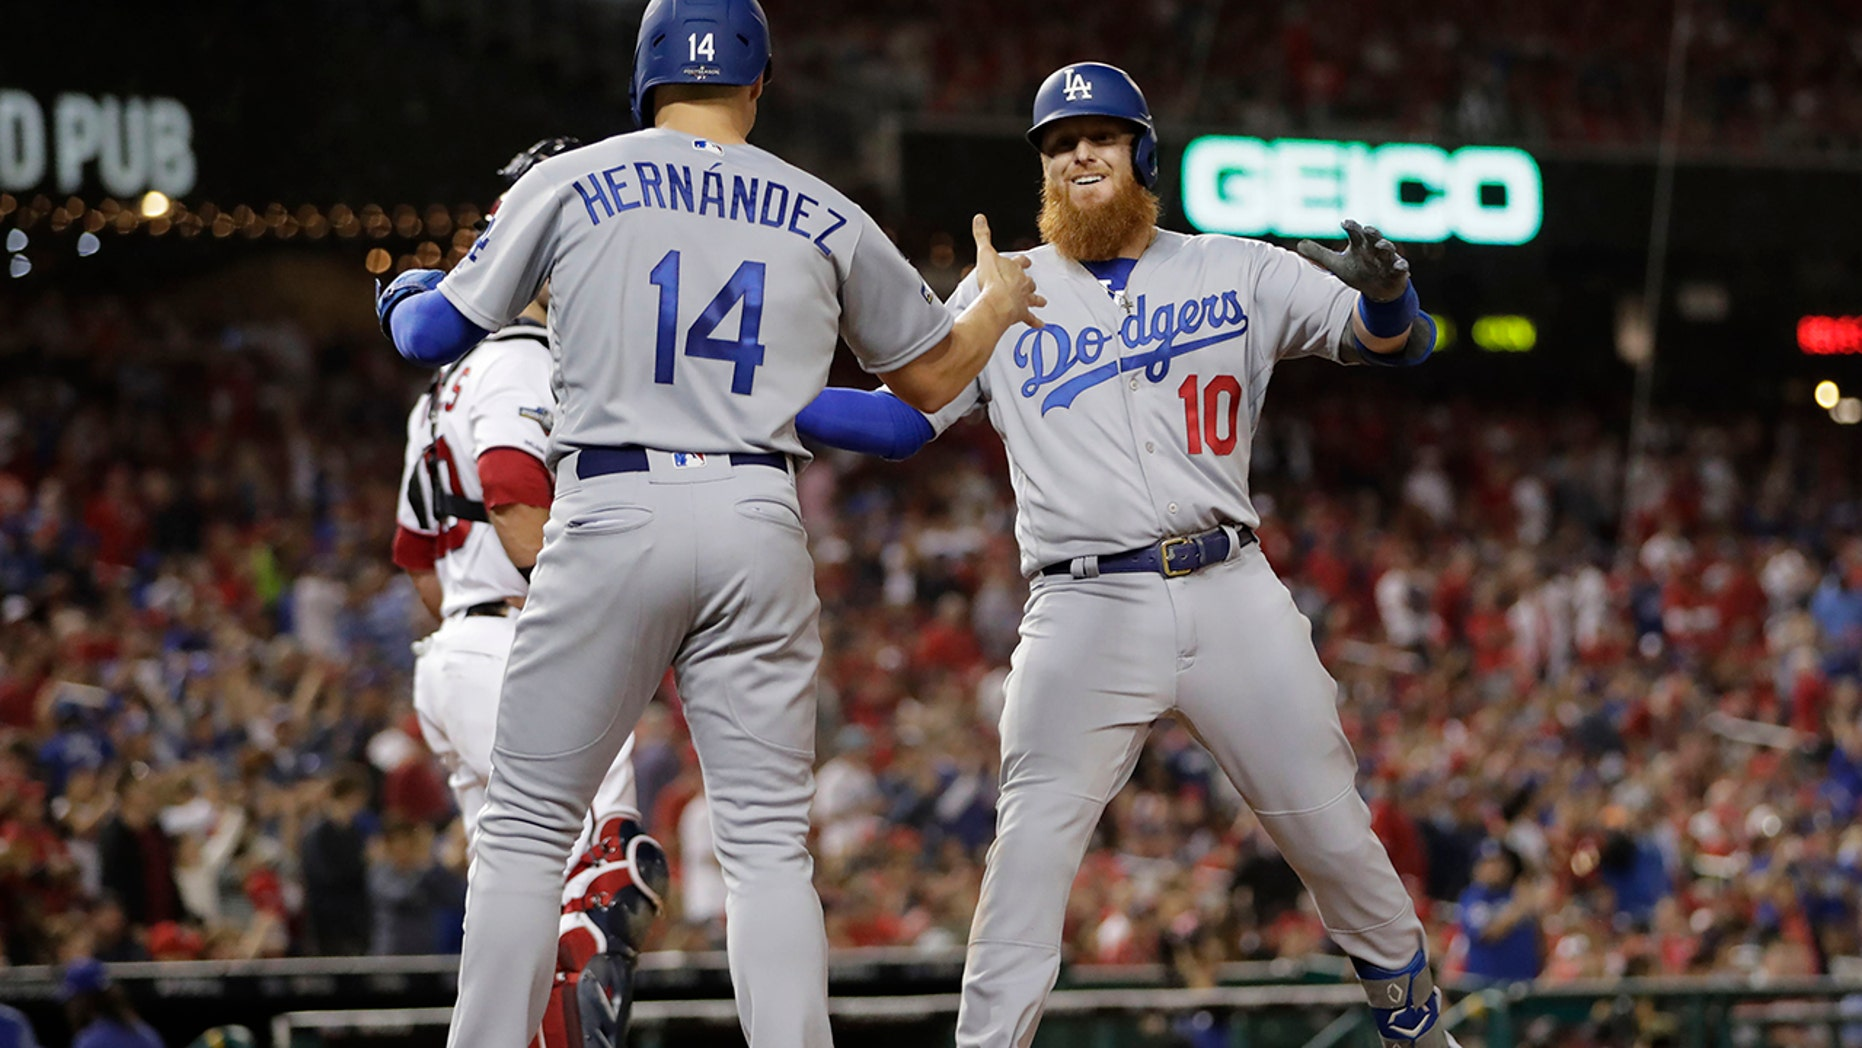 Westlake Legal Group MLB-Justin-Turner 7 2-out runs in 6th lift LA past Nats 10-4 for 2-1 NLDS lead fox-news/sports/mlb/washington-nationals fox-news/sports/mlb/los-angeles-dodgers fox-news/sports/mlb-postseason fox-news/sports/mlb fnc/sports fnc Associated Press article 9b60d36c-46df-5db9-8a75-d16a6fcafbf6